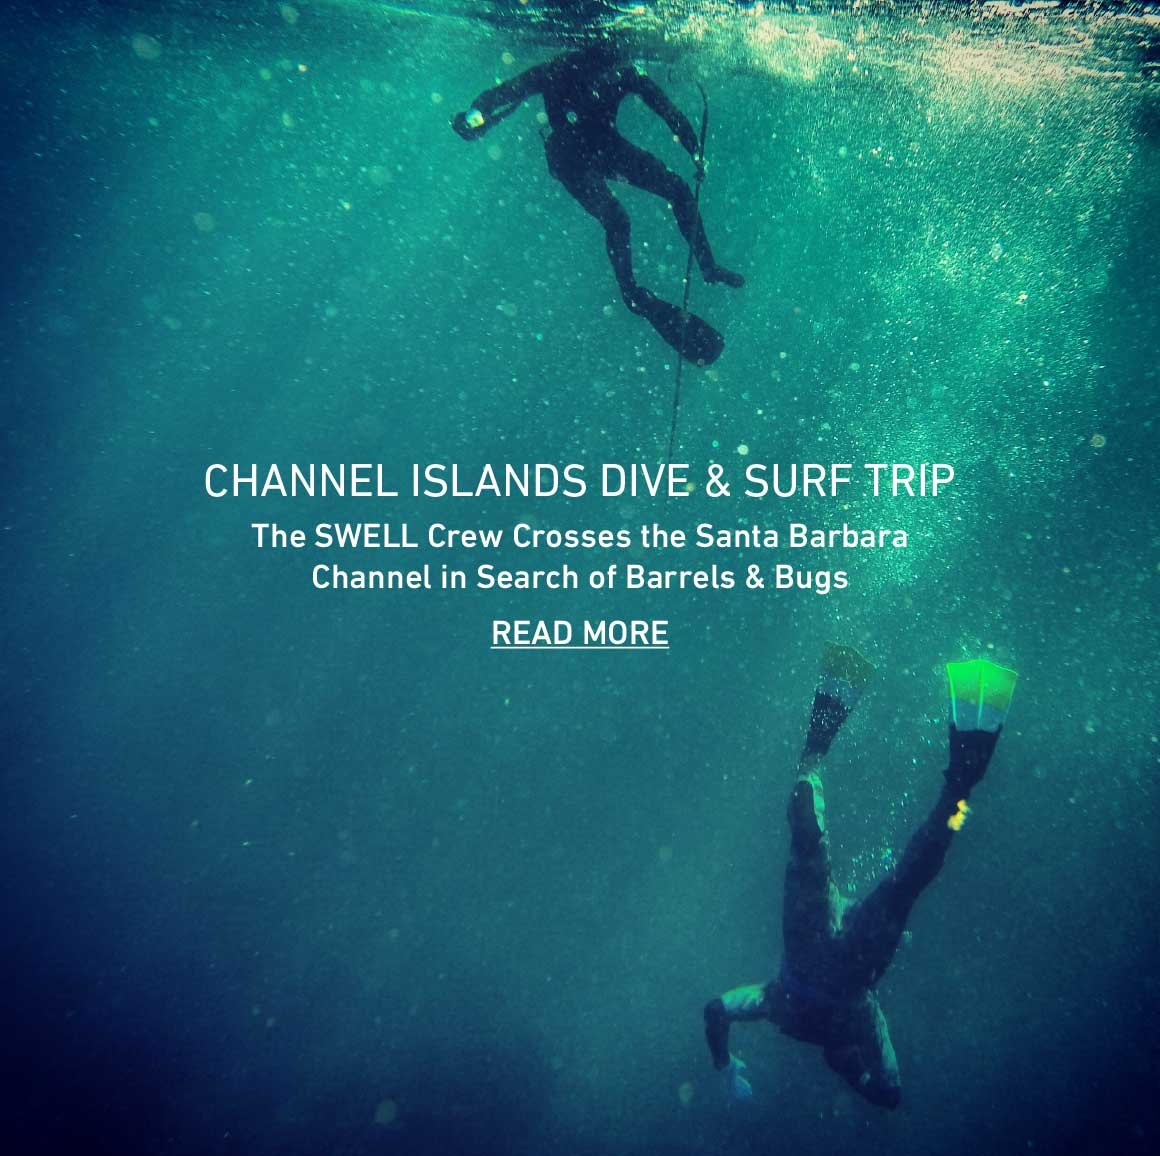 Channel Islands Dive + Surf Trip